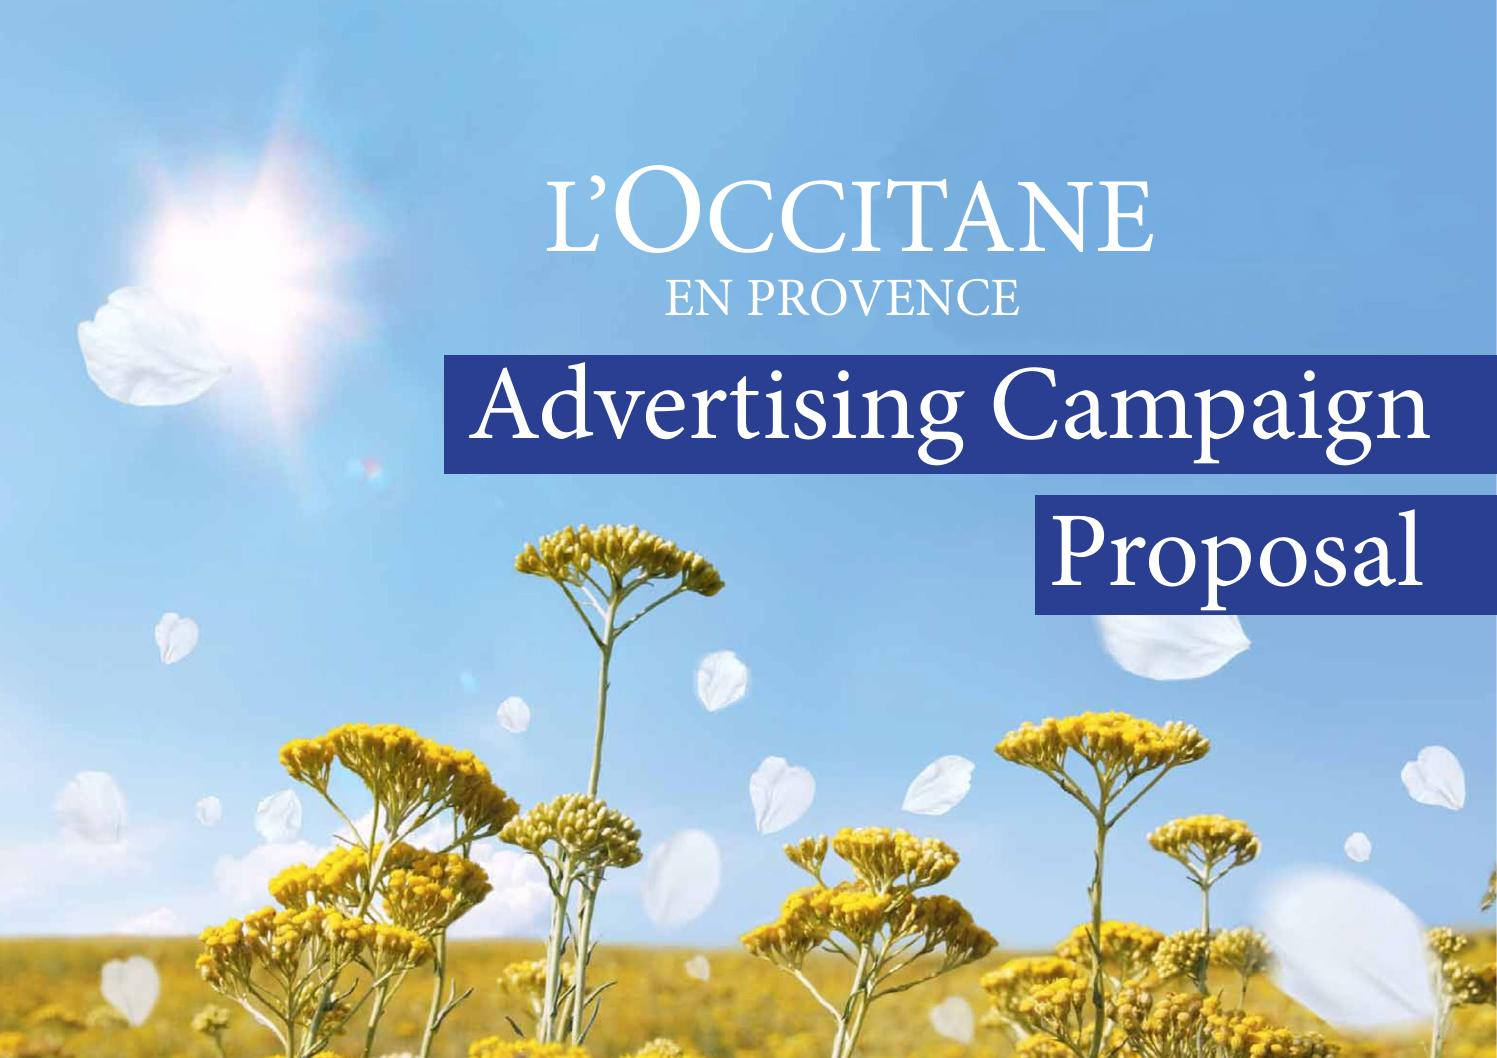 l occitane advertising campaign proposal by alana mustill issuu